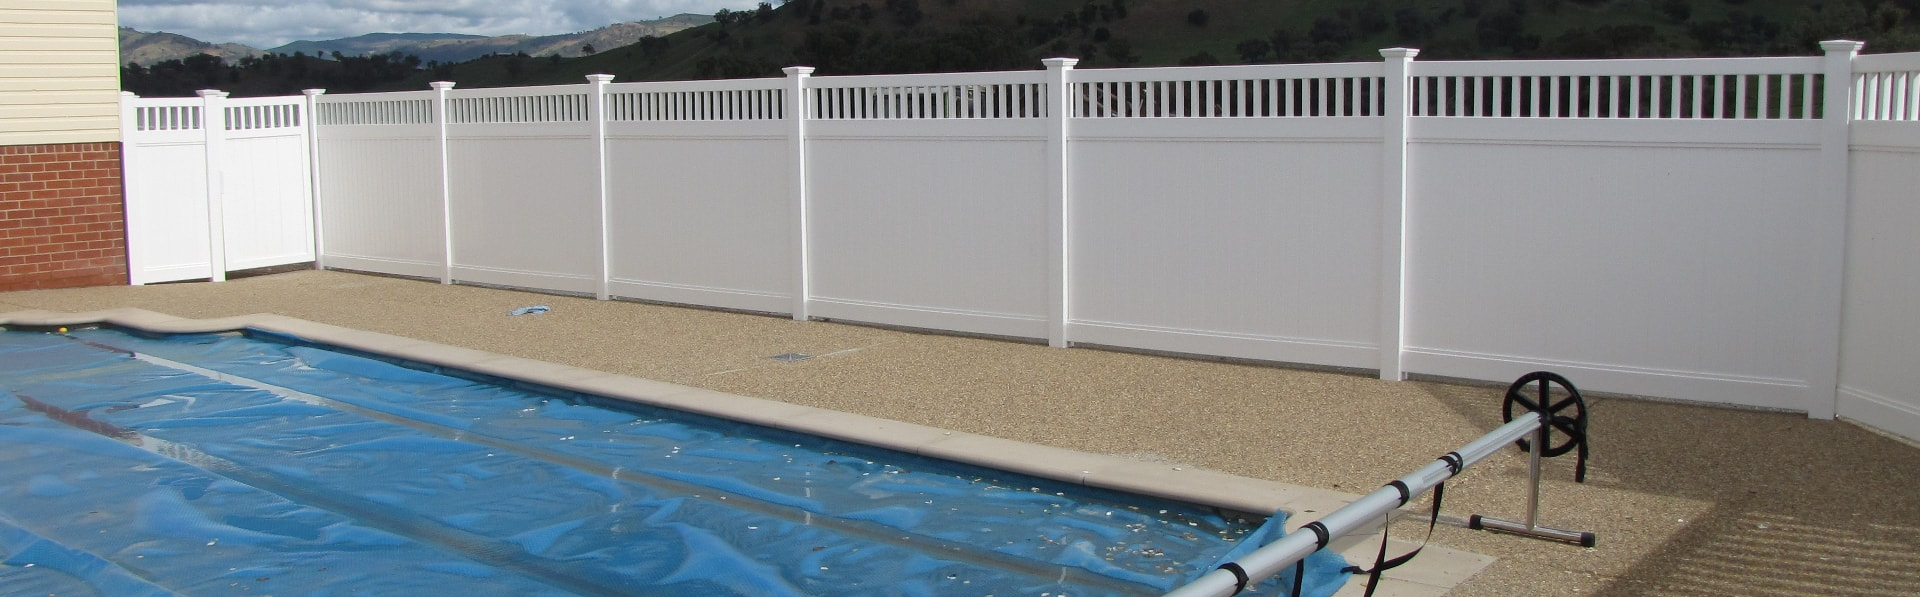 Pool And Safety Fencing Big Country Pvc Fencing Australian Owned